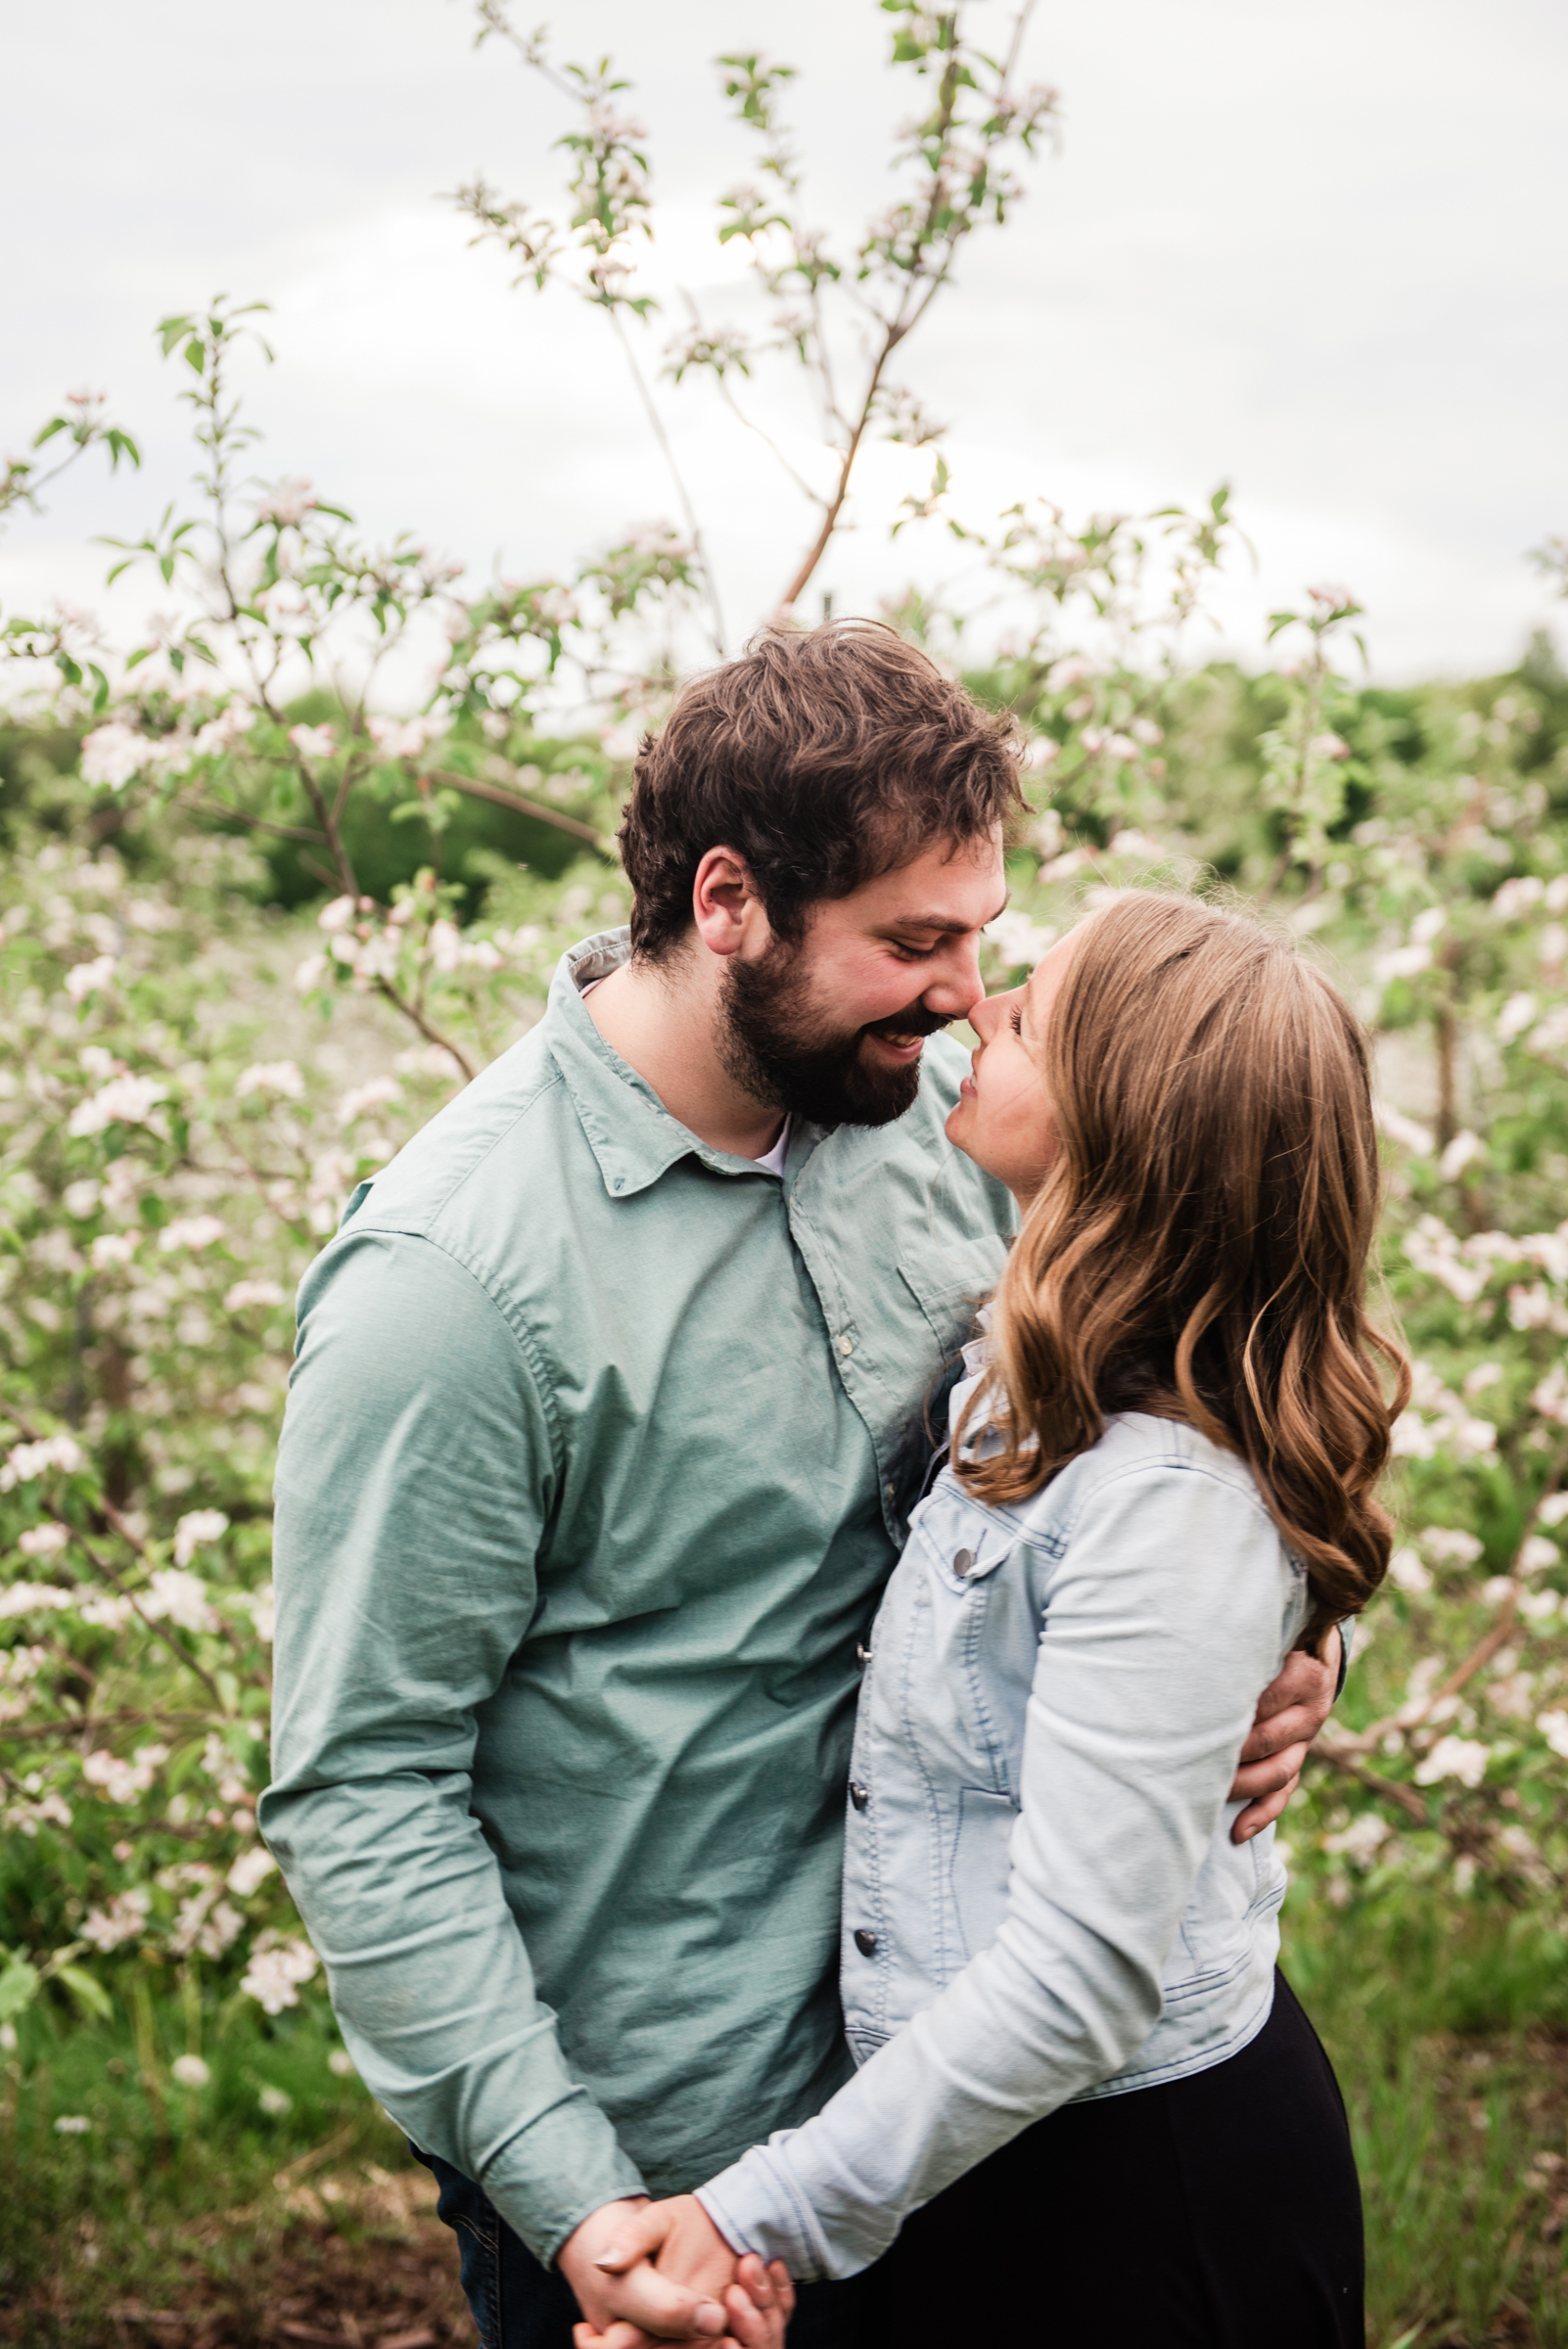 Fox_Farm_Rochester_Couples_Session_JILL_STUDIO_Rochester_NY_Photographer_DSC_7645.jpg